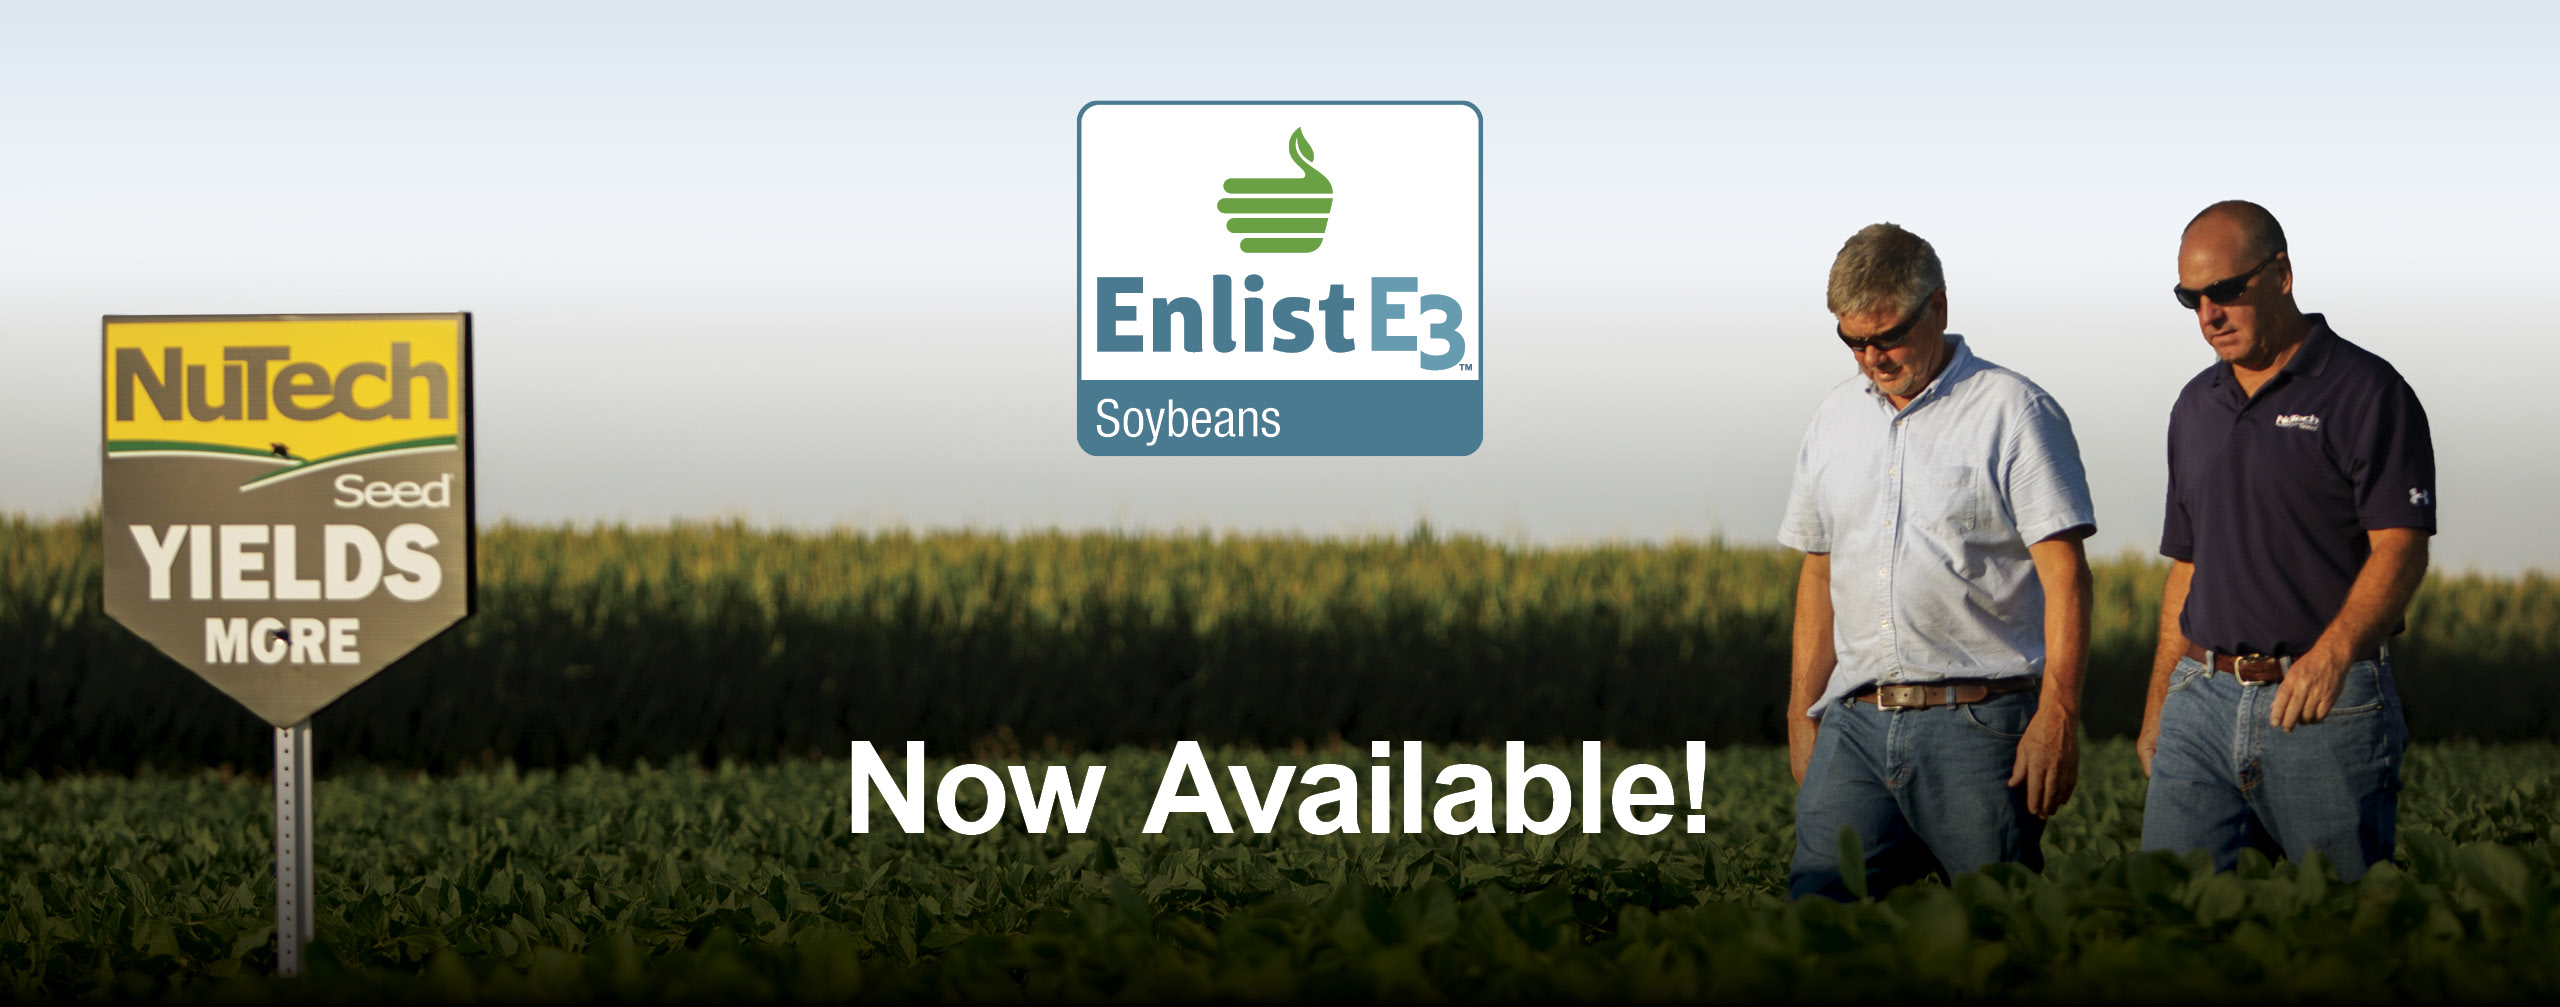 7300-25677 NuTech Enlist E3 Launch – Website Banner_v01